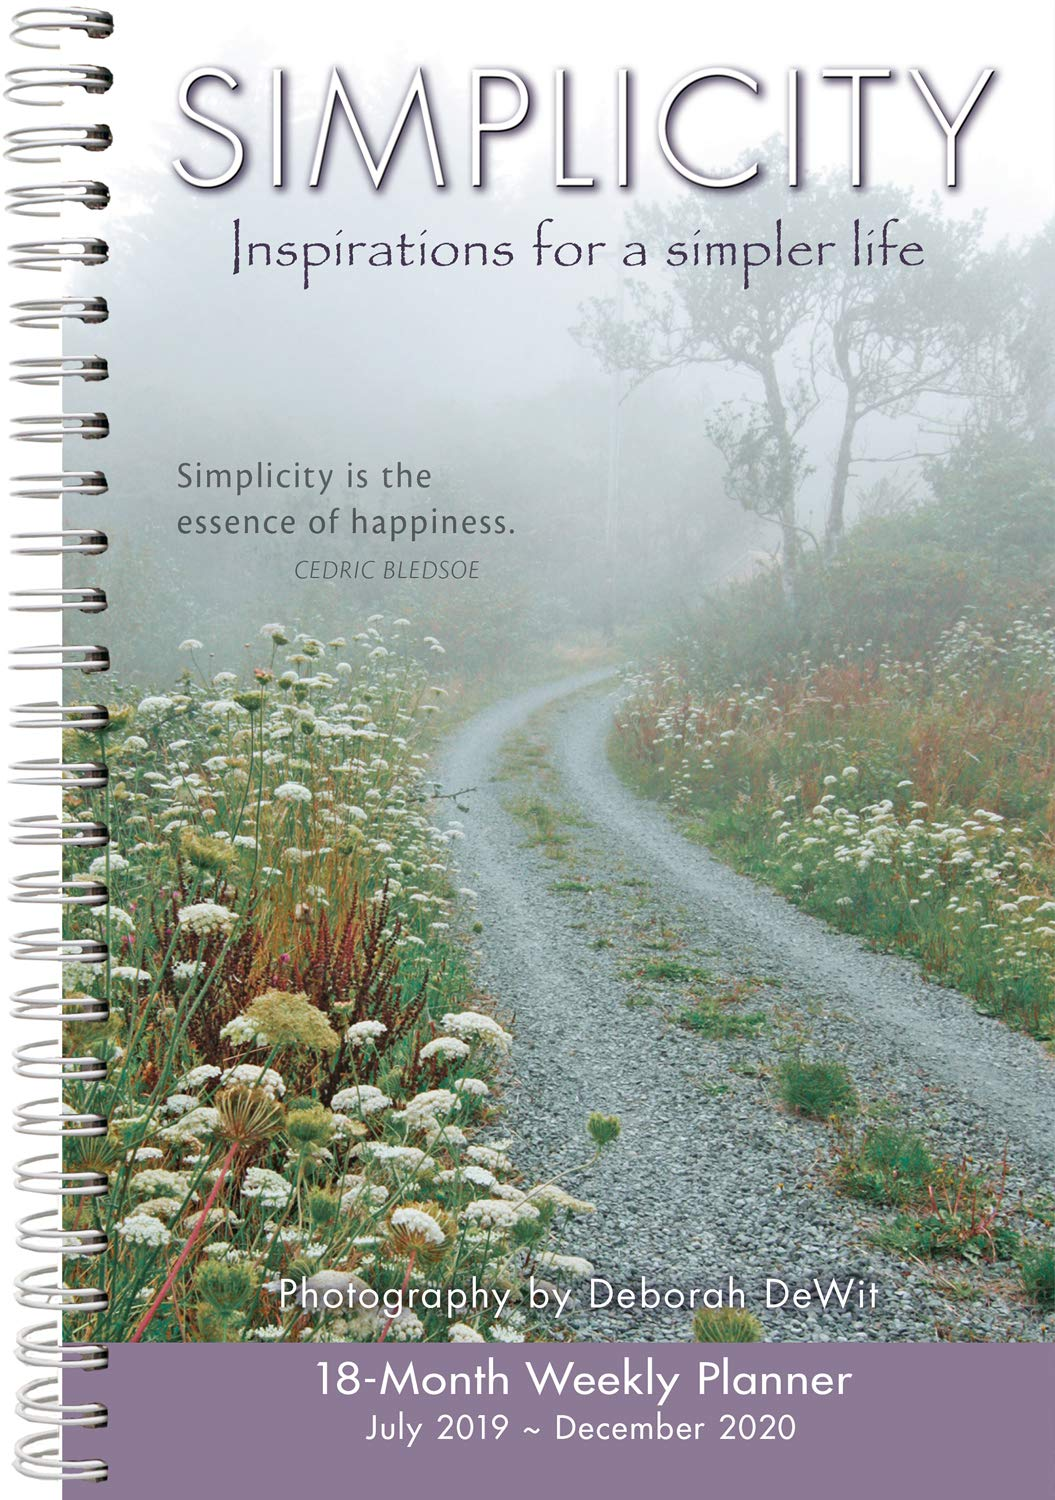 Simplicity 2020 Day Planner 18-Month - Daily Weekly Monthly Planner Yearly Agenda Organizer - Inspirations for a Simpler Life: July 2019 - December ...